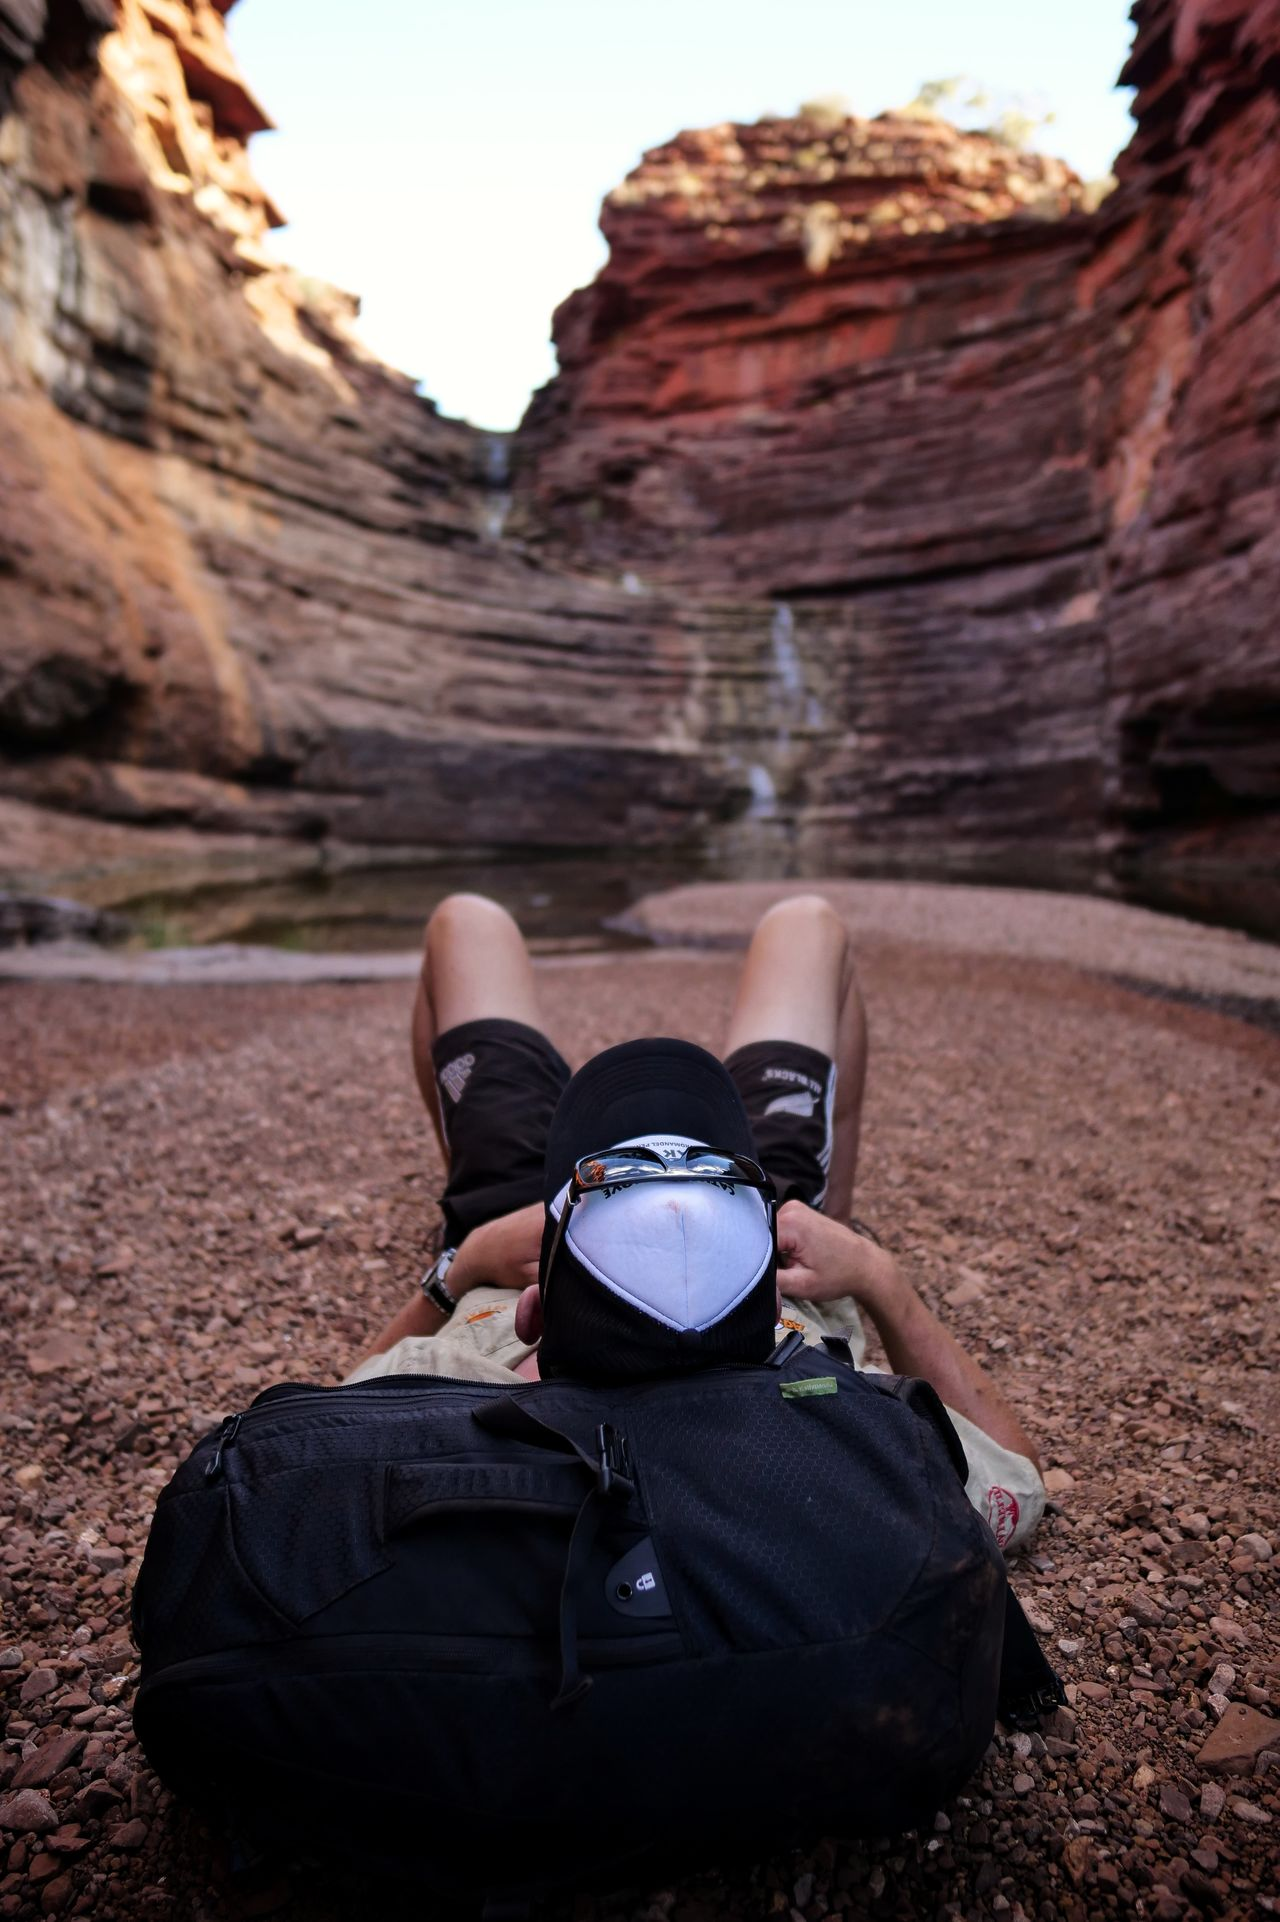 Rear view of man lying on desert against rock formations